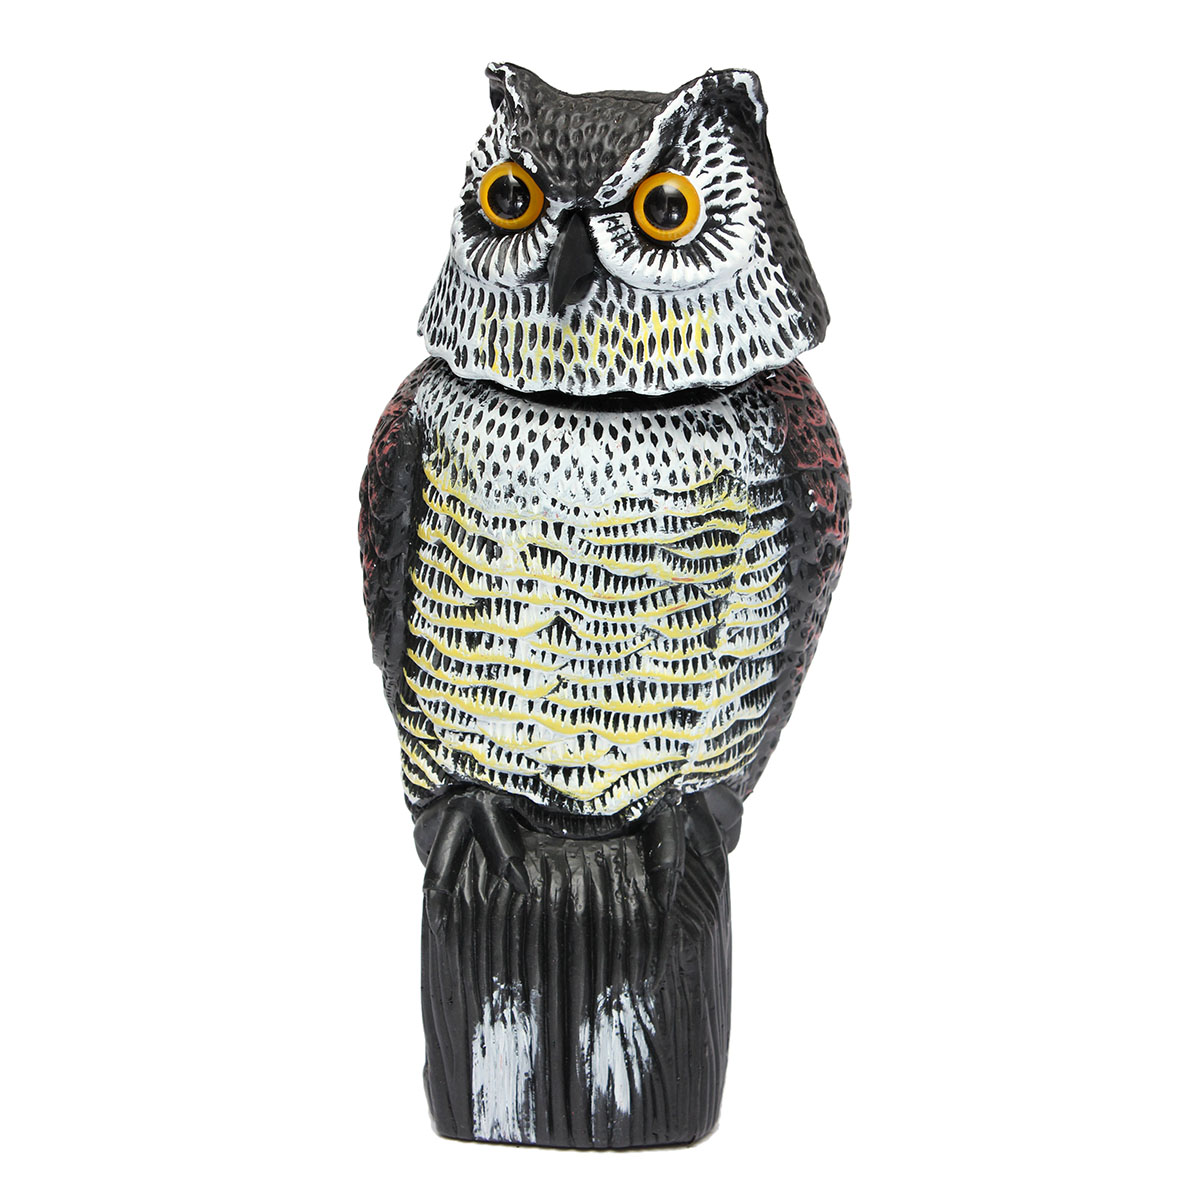 1PC Large Realistic Owl Decoy With Rotating Head Bird/Pigeon Crow Scarer Scarecrow Simulation Plastic Protects Garden